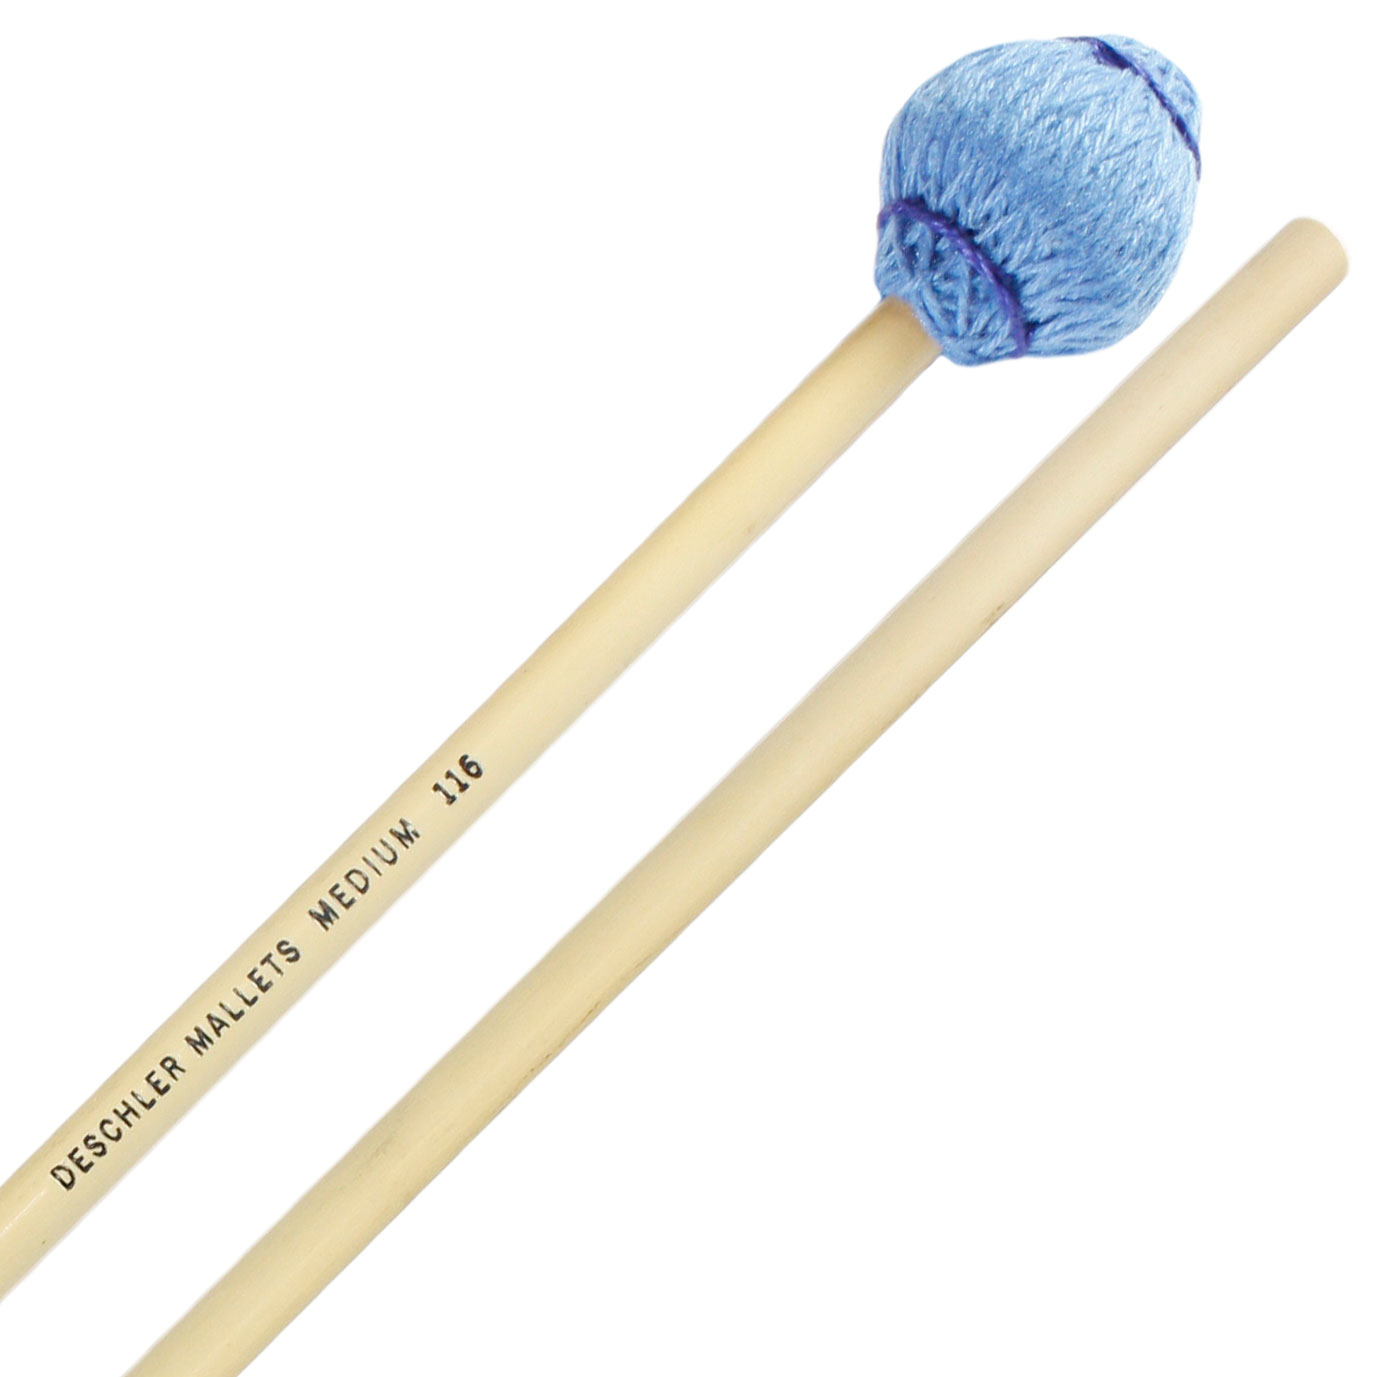 Deschler All-Purpose Keyboard Mallets, Medium Mushroom Head, Rattan